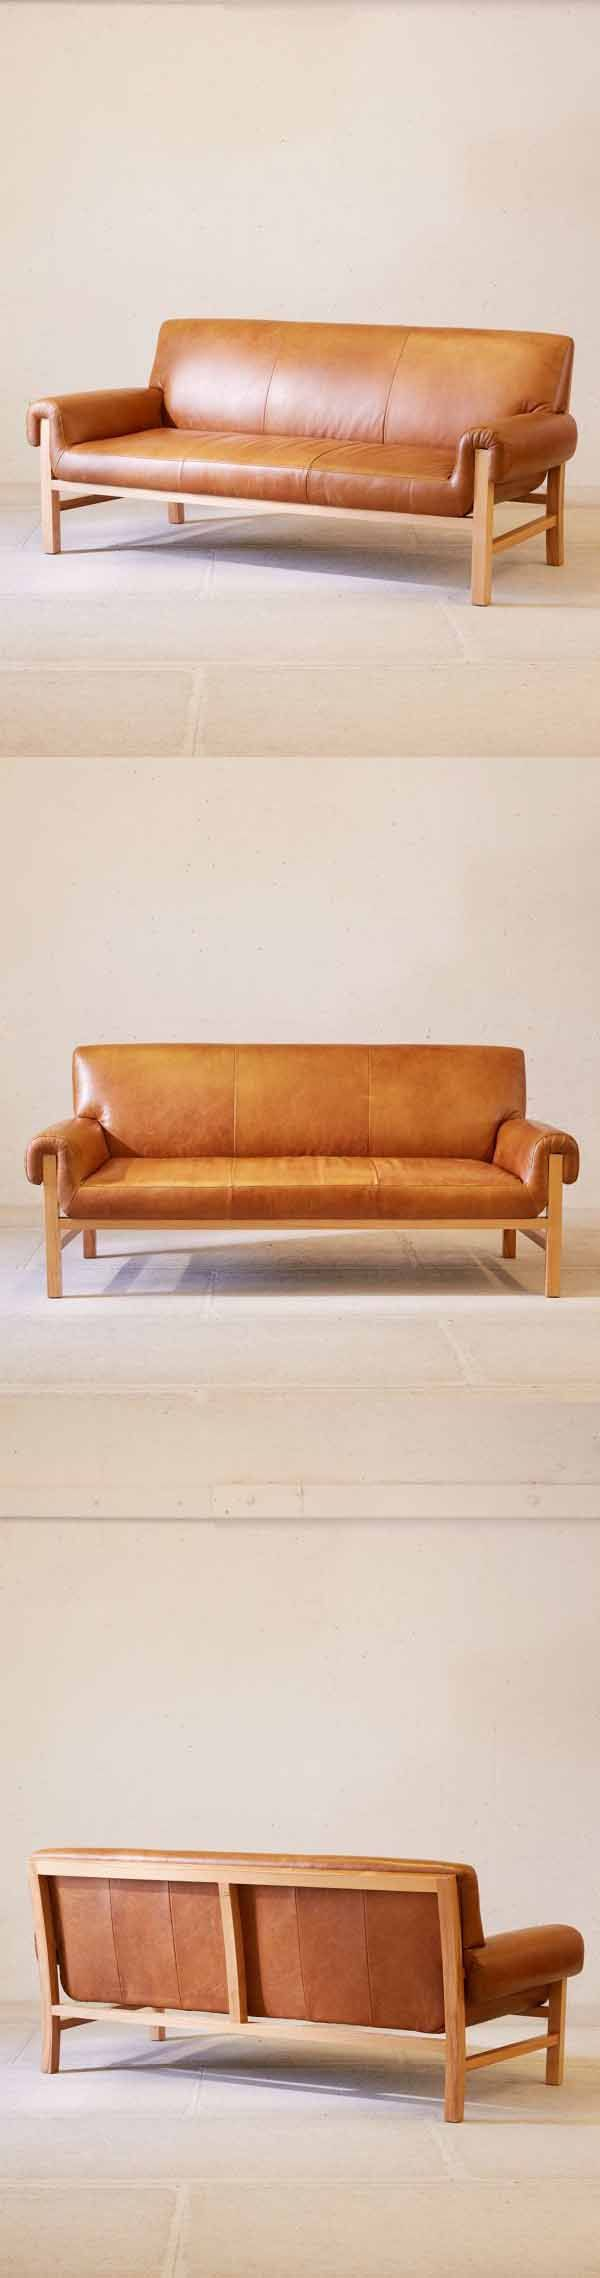 Luxe Leather Sofa On A Solid Natural